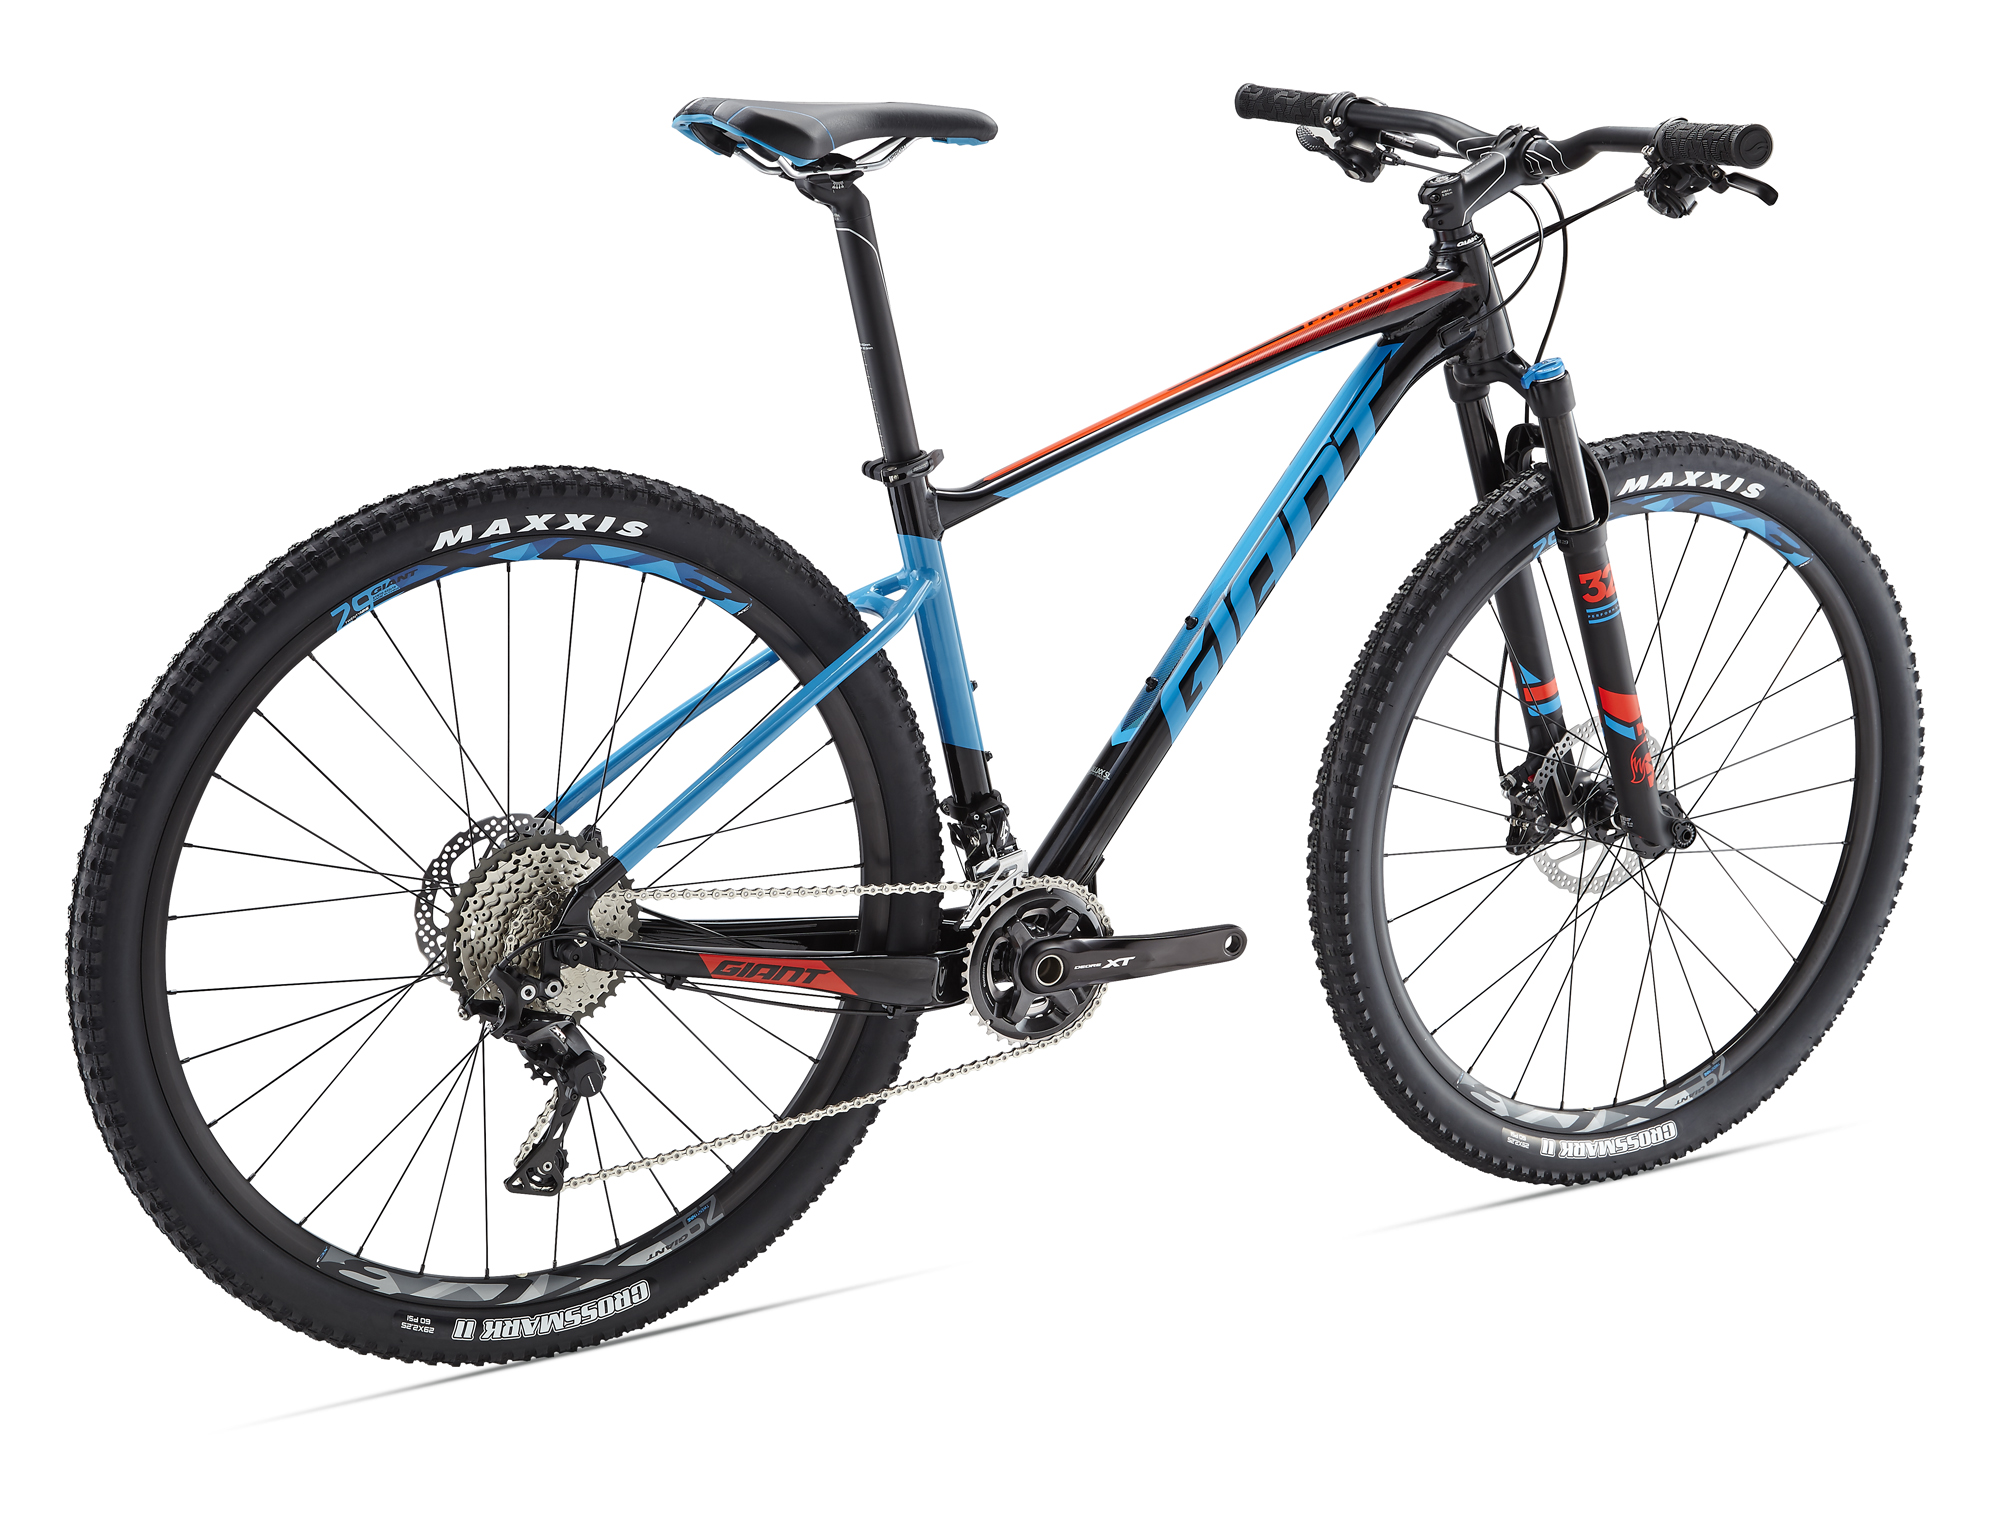 Bigger wheels and a steeper HA make the Fathom 29 the best choice for XC aficionados.